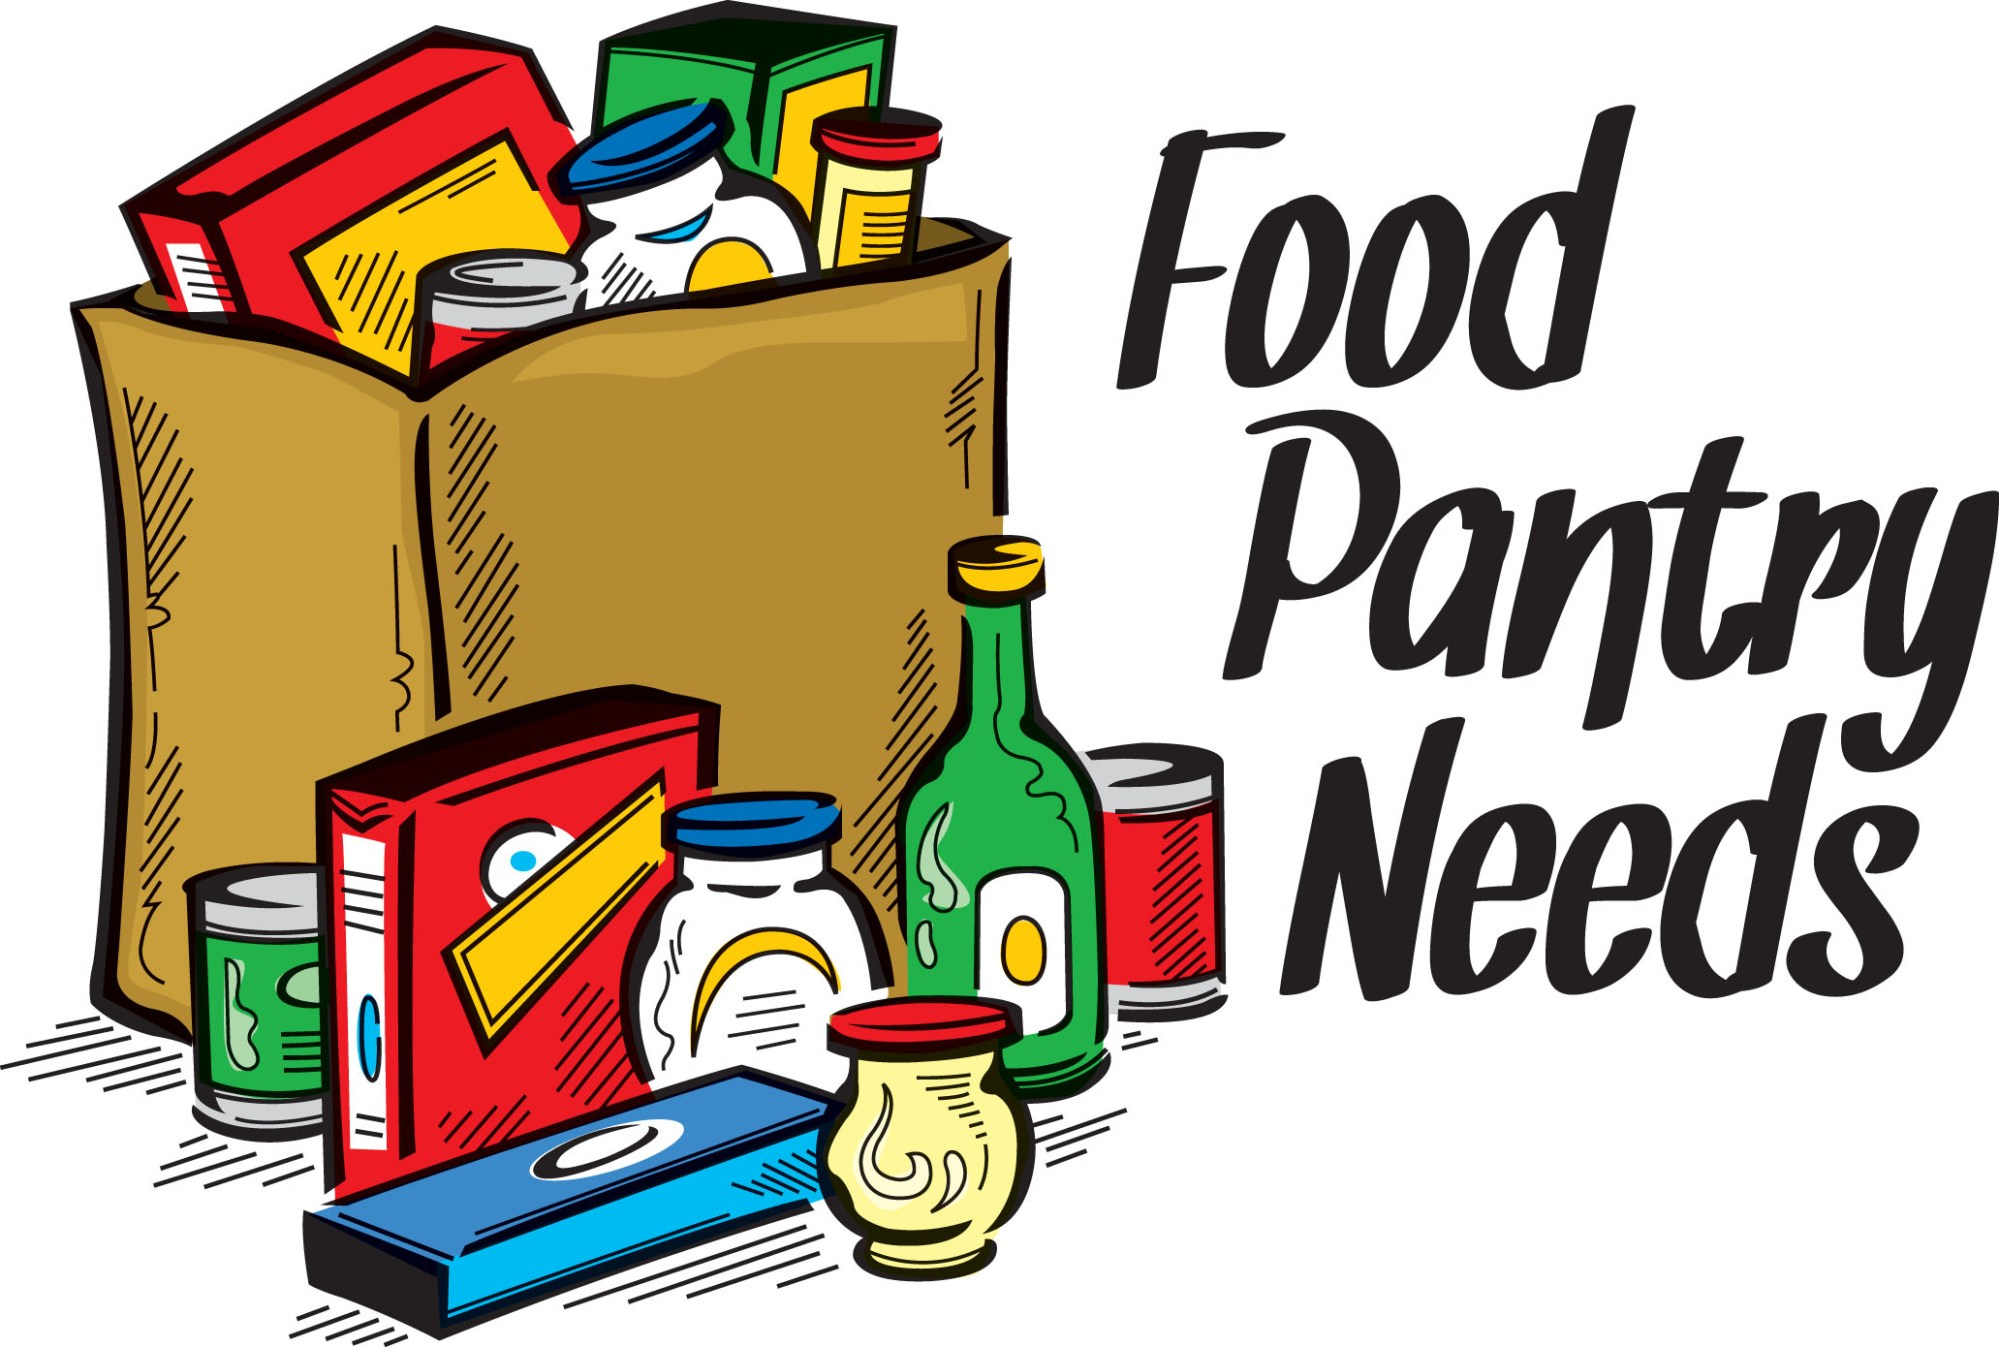 hight resolution of food pantry clipart